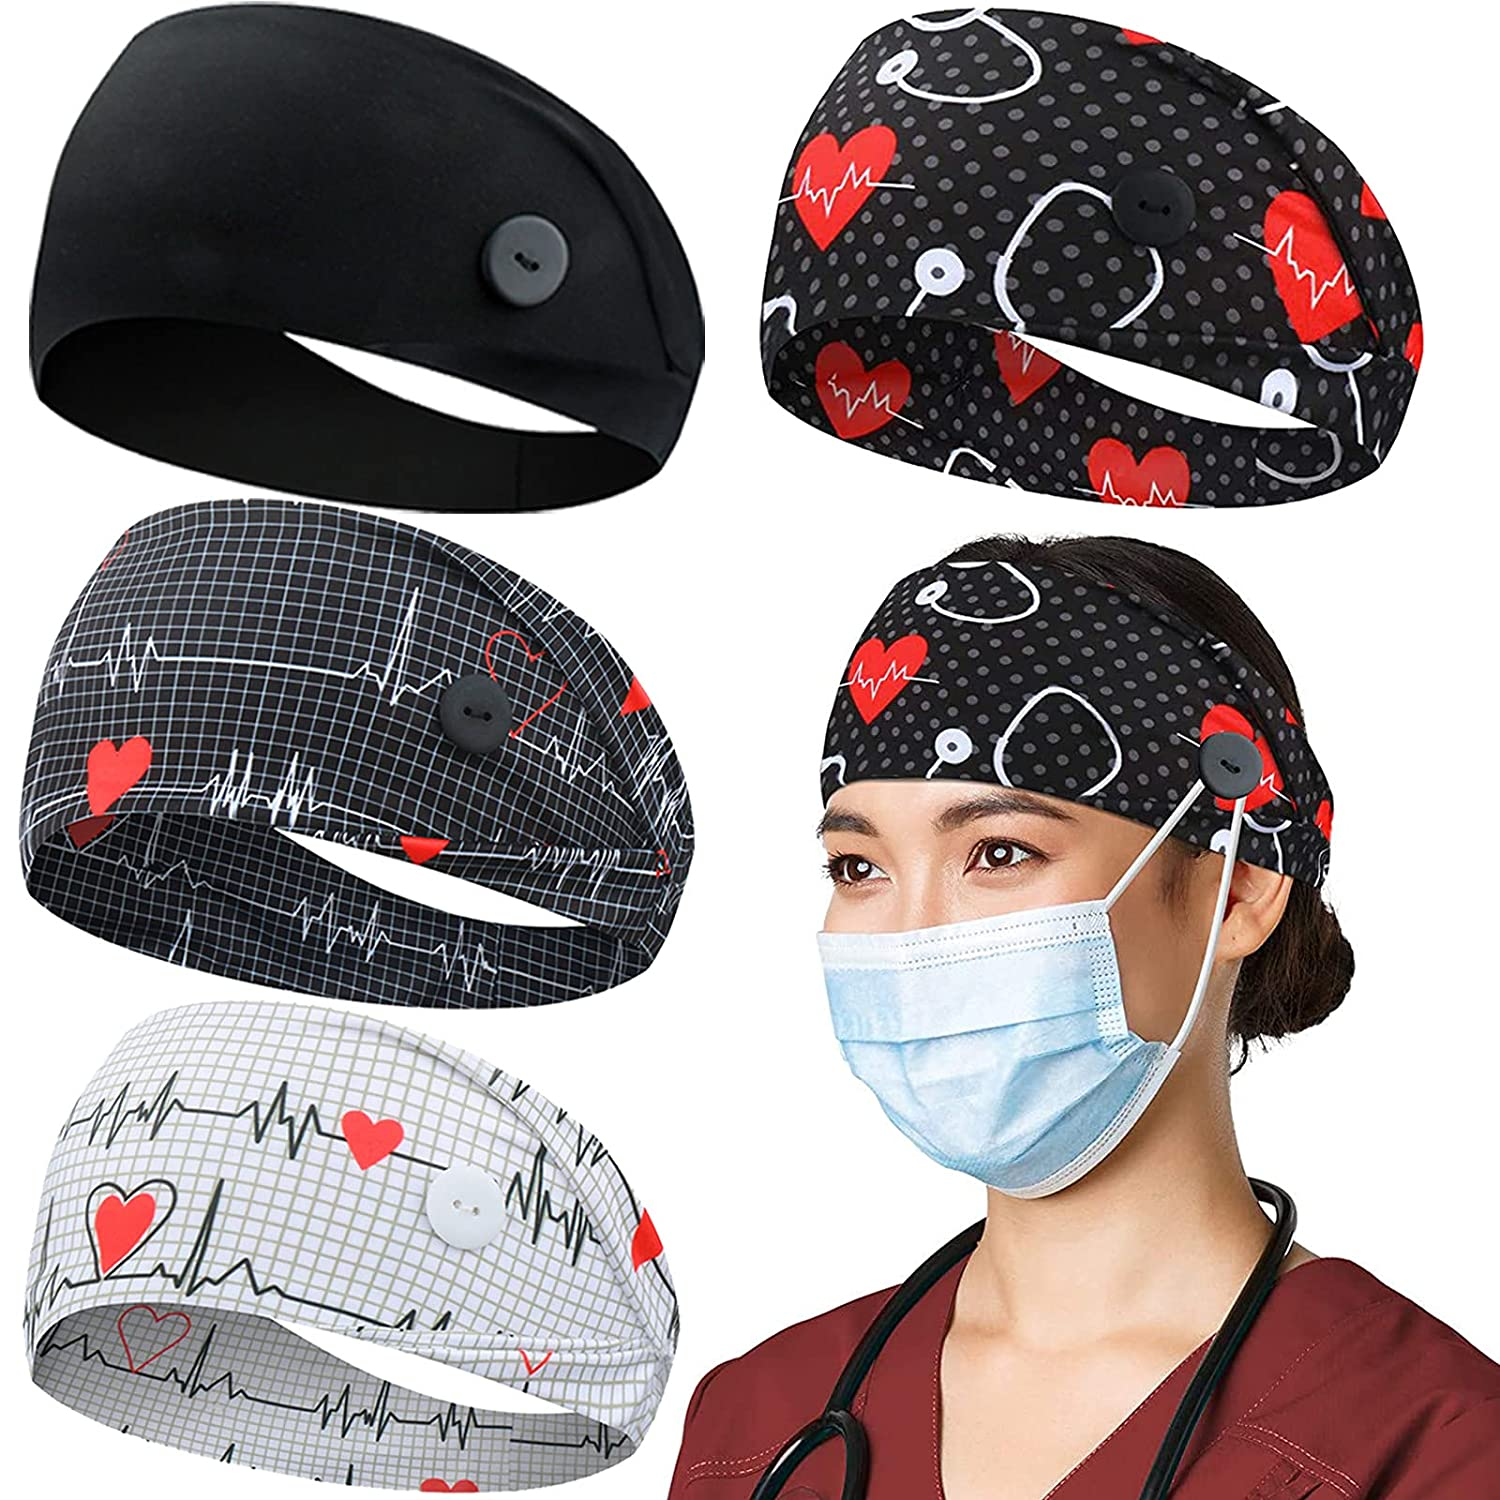 Headbands with Button for Mask, Wide Nurses Headbands Non Slip Elastic Ear Protection for Women Men Doctors Sweatband Head Wrap (BUTTON- 4 PACK COLOR30)